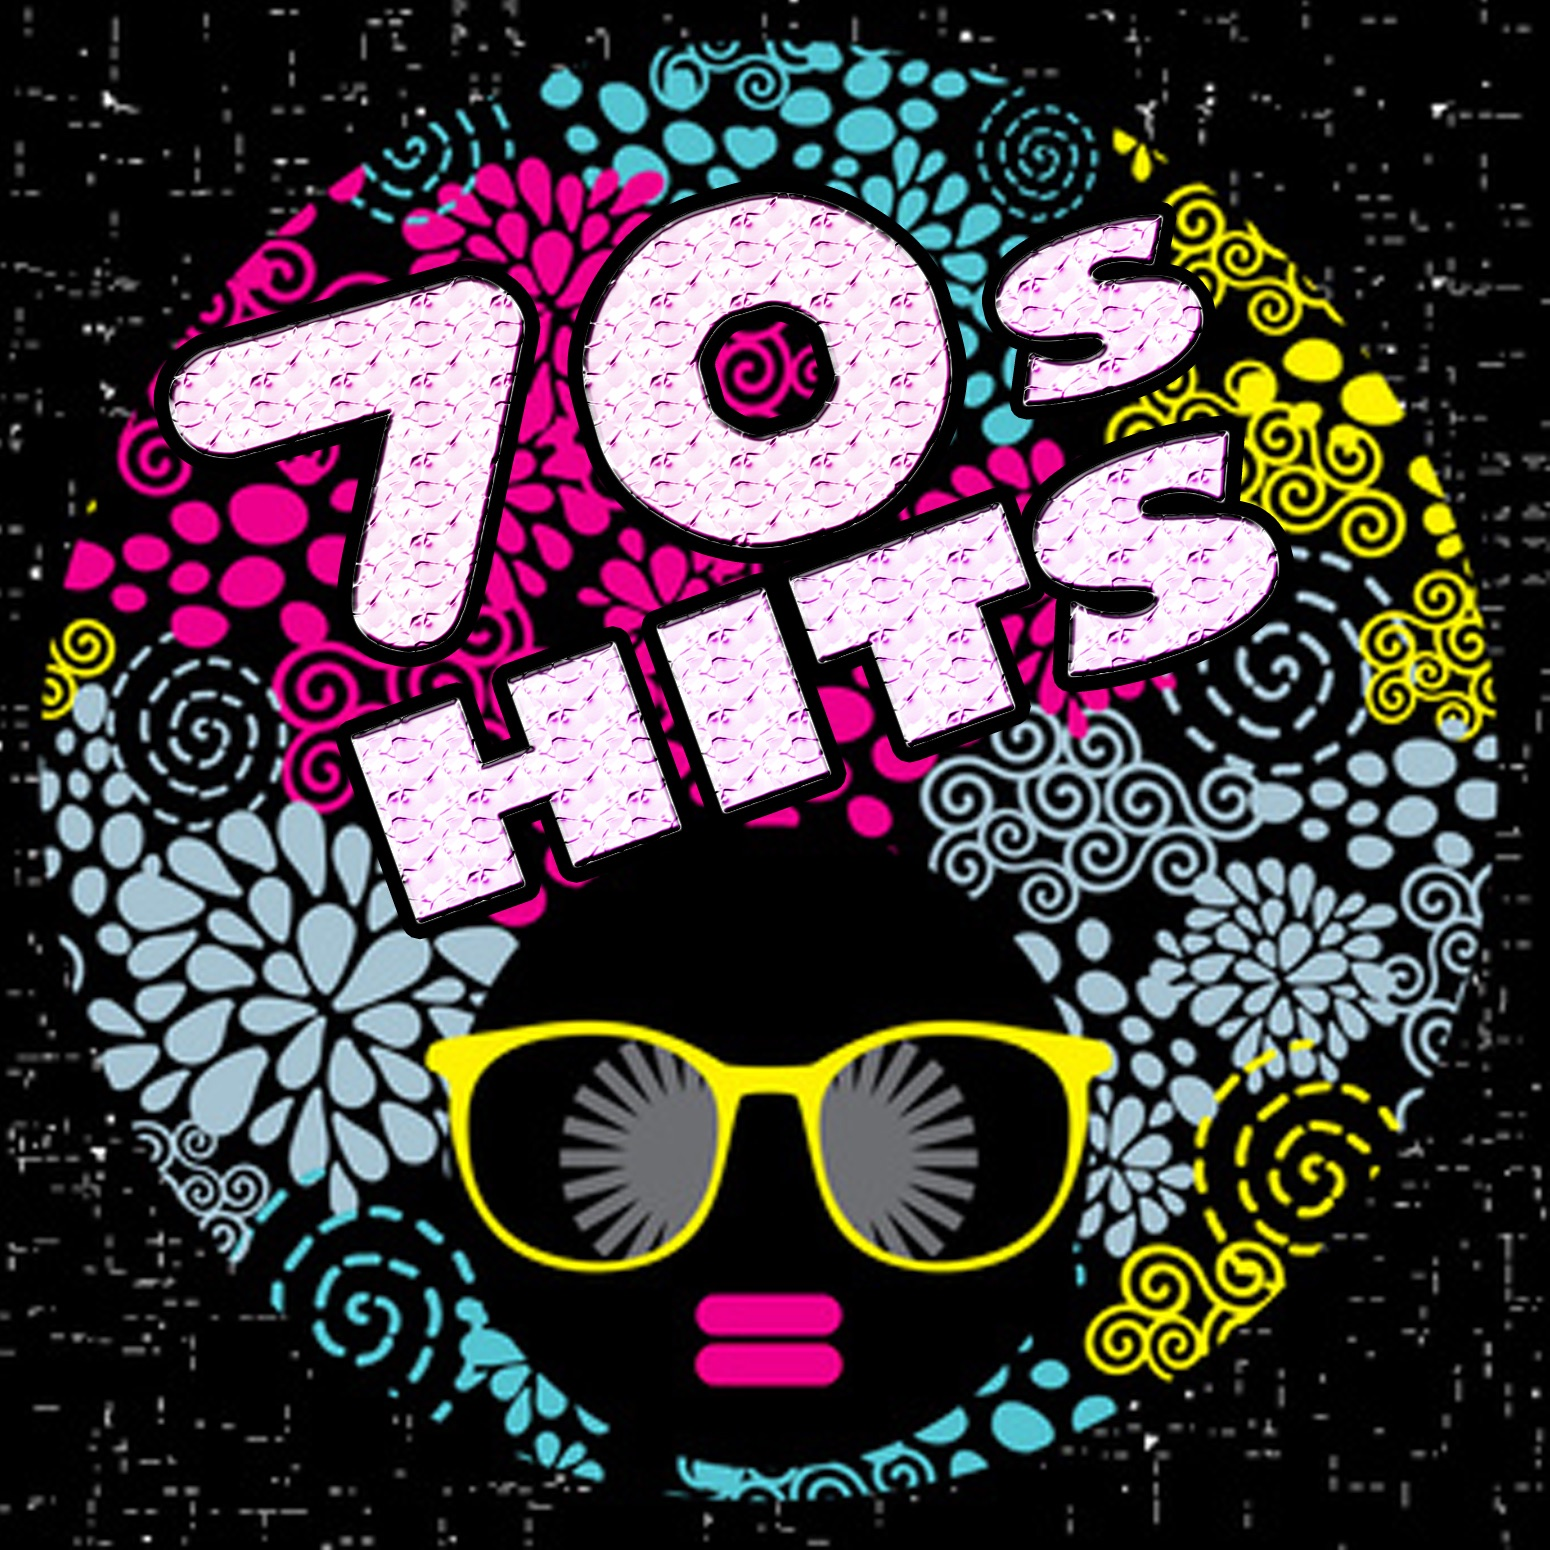 70s Hits (The Best of Seventies Disco Music) by Juliana ...